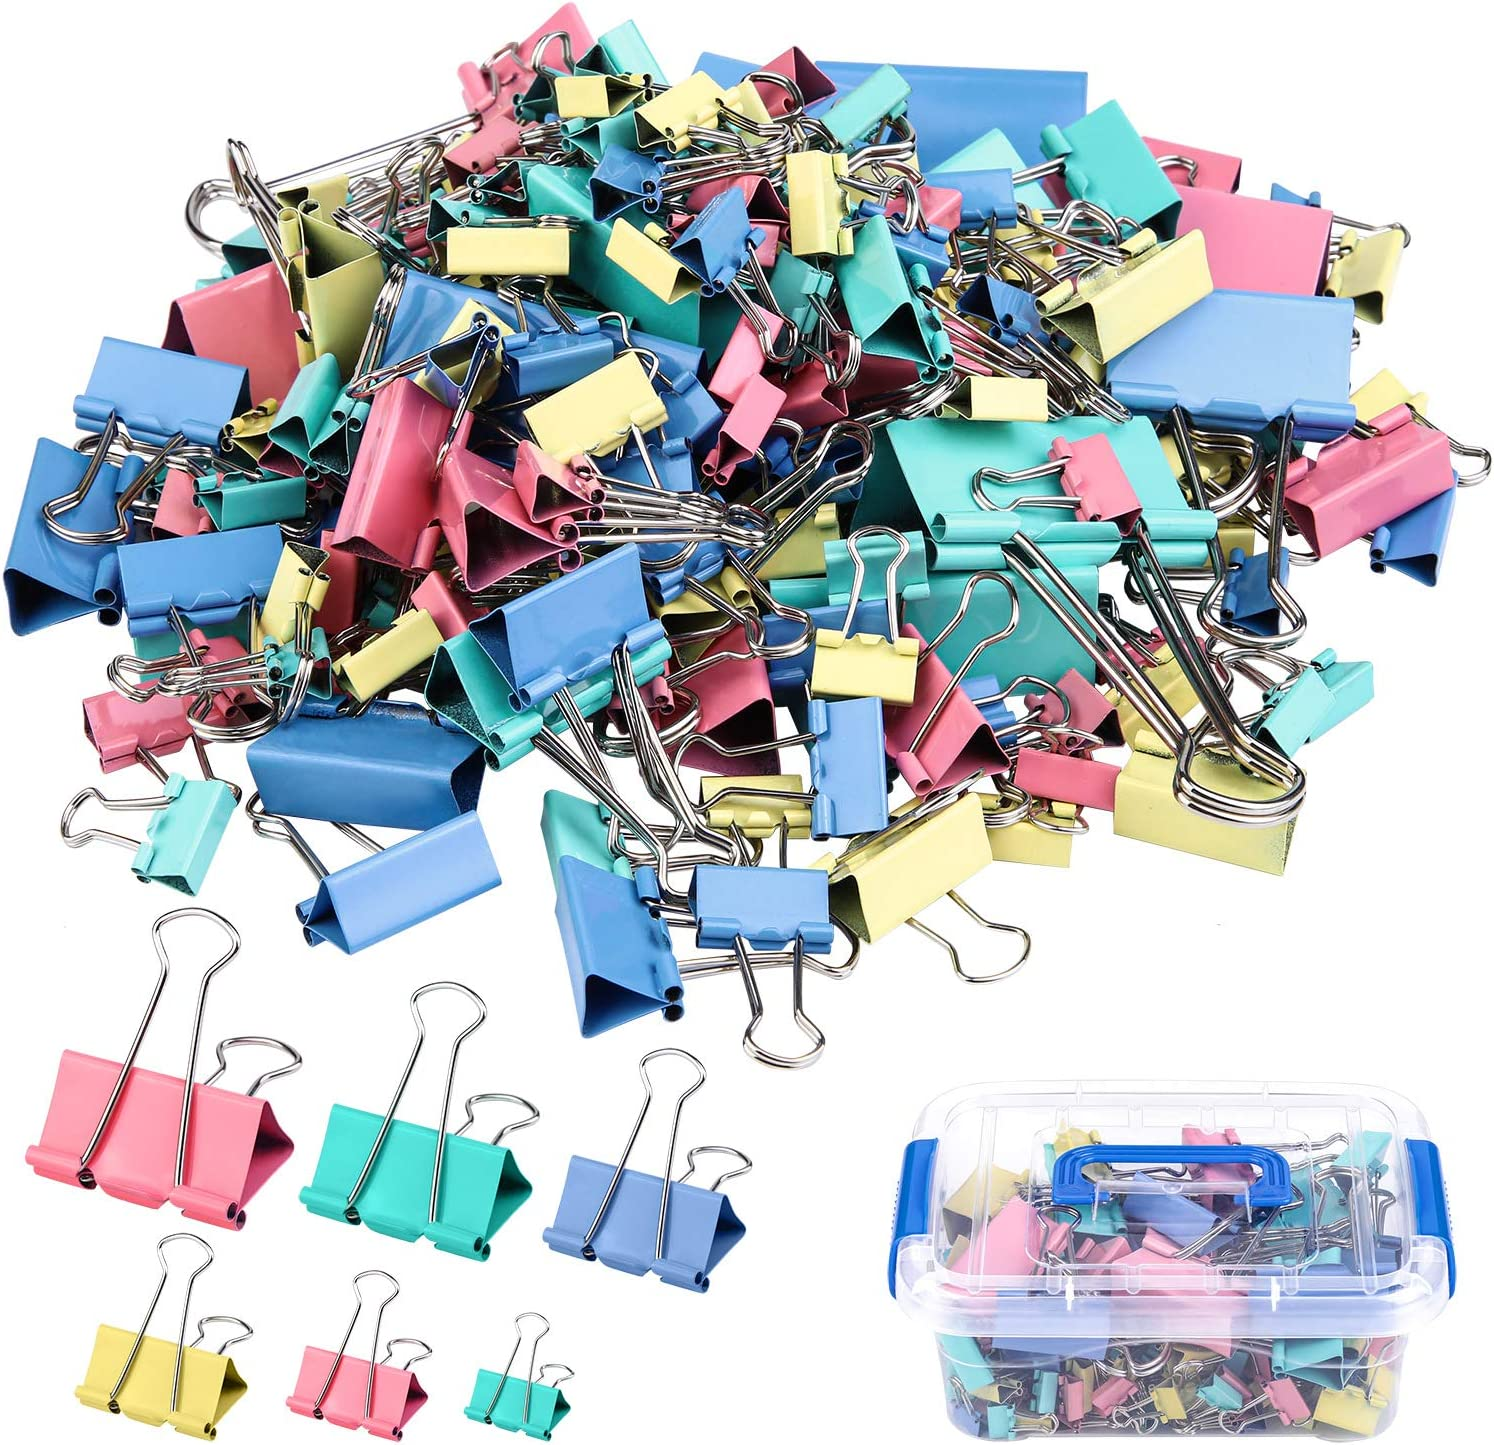 ADXCO 200 Pcs Colored Binder Clips, Metal Fold Back Clips with Box Paper Clamps with 4 Colors and 6 Sizes in 1 Pack for Office, School and Home Supplies